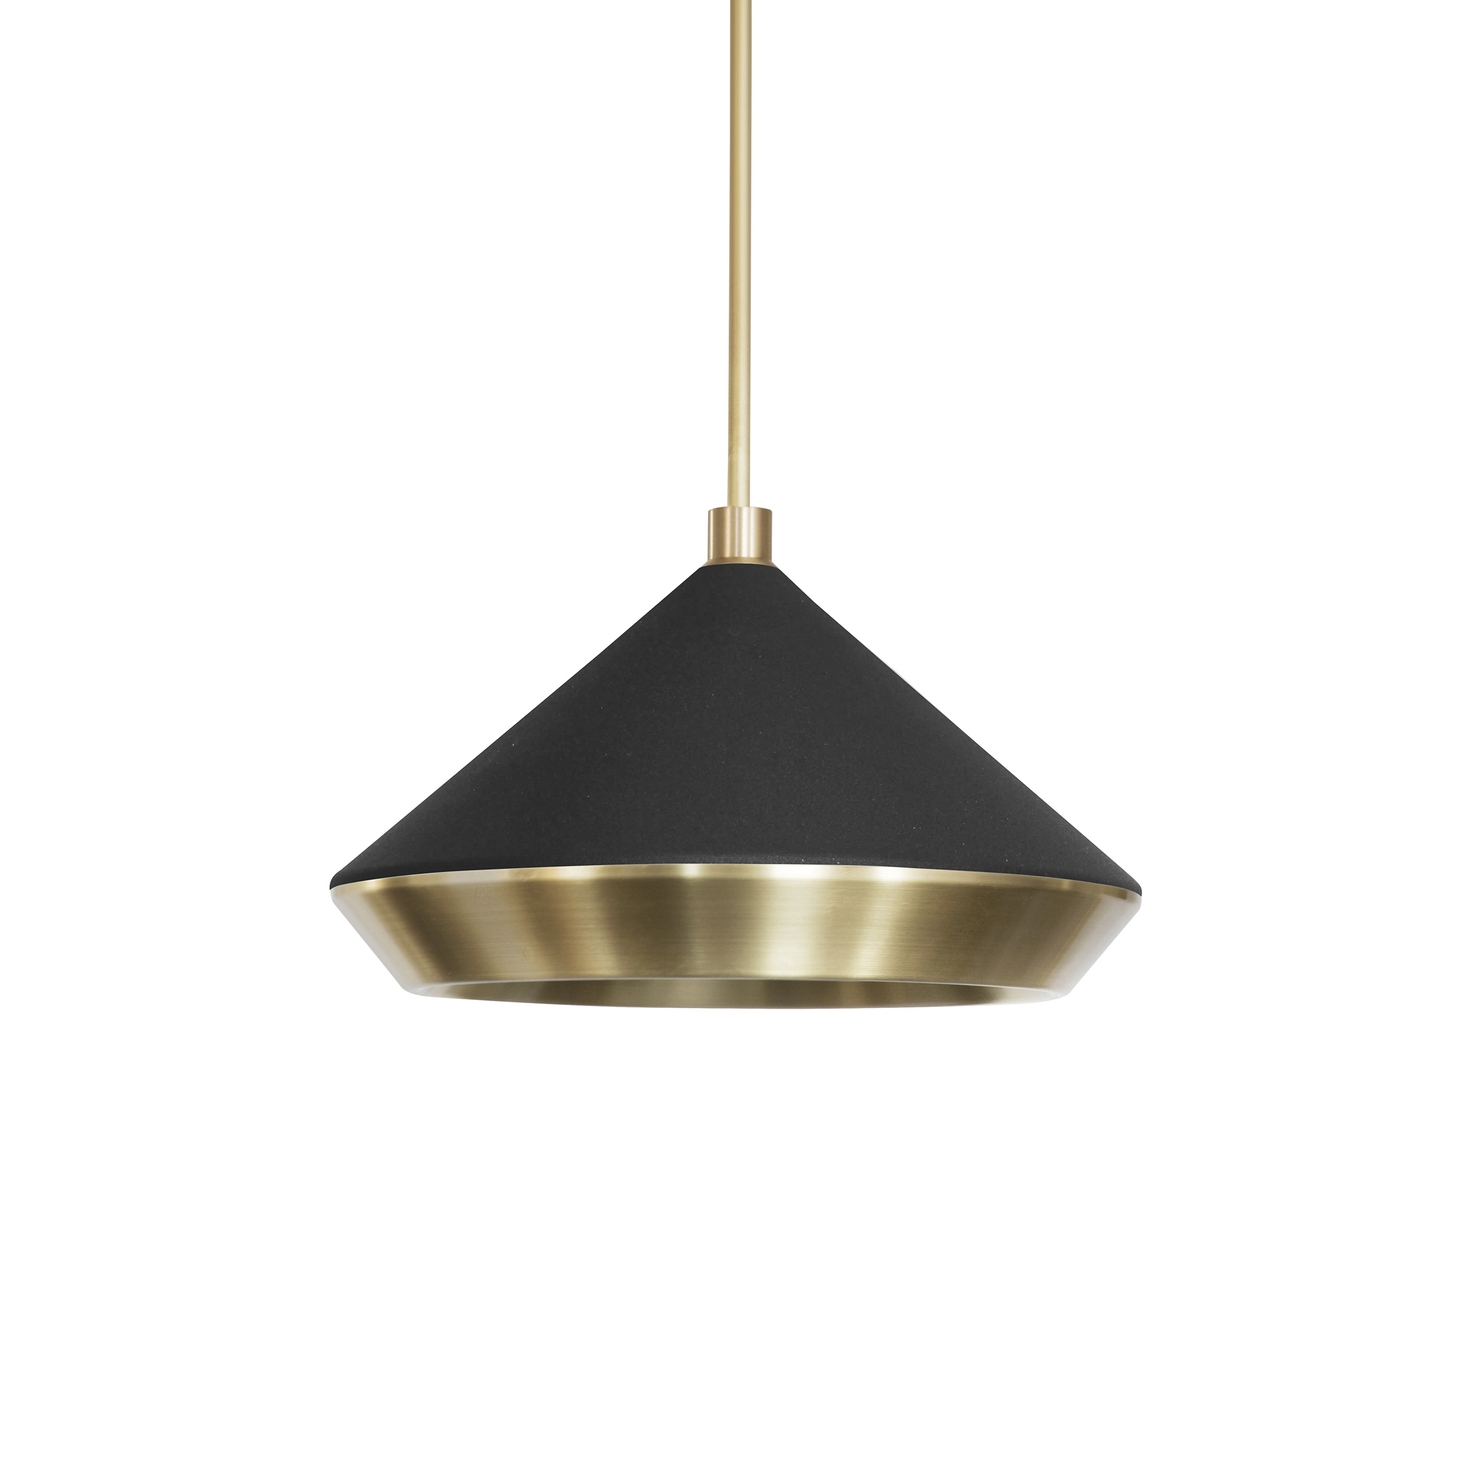 lovinhome lamp pendant louis poulsen black above